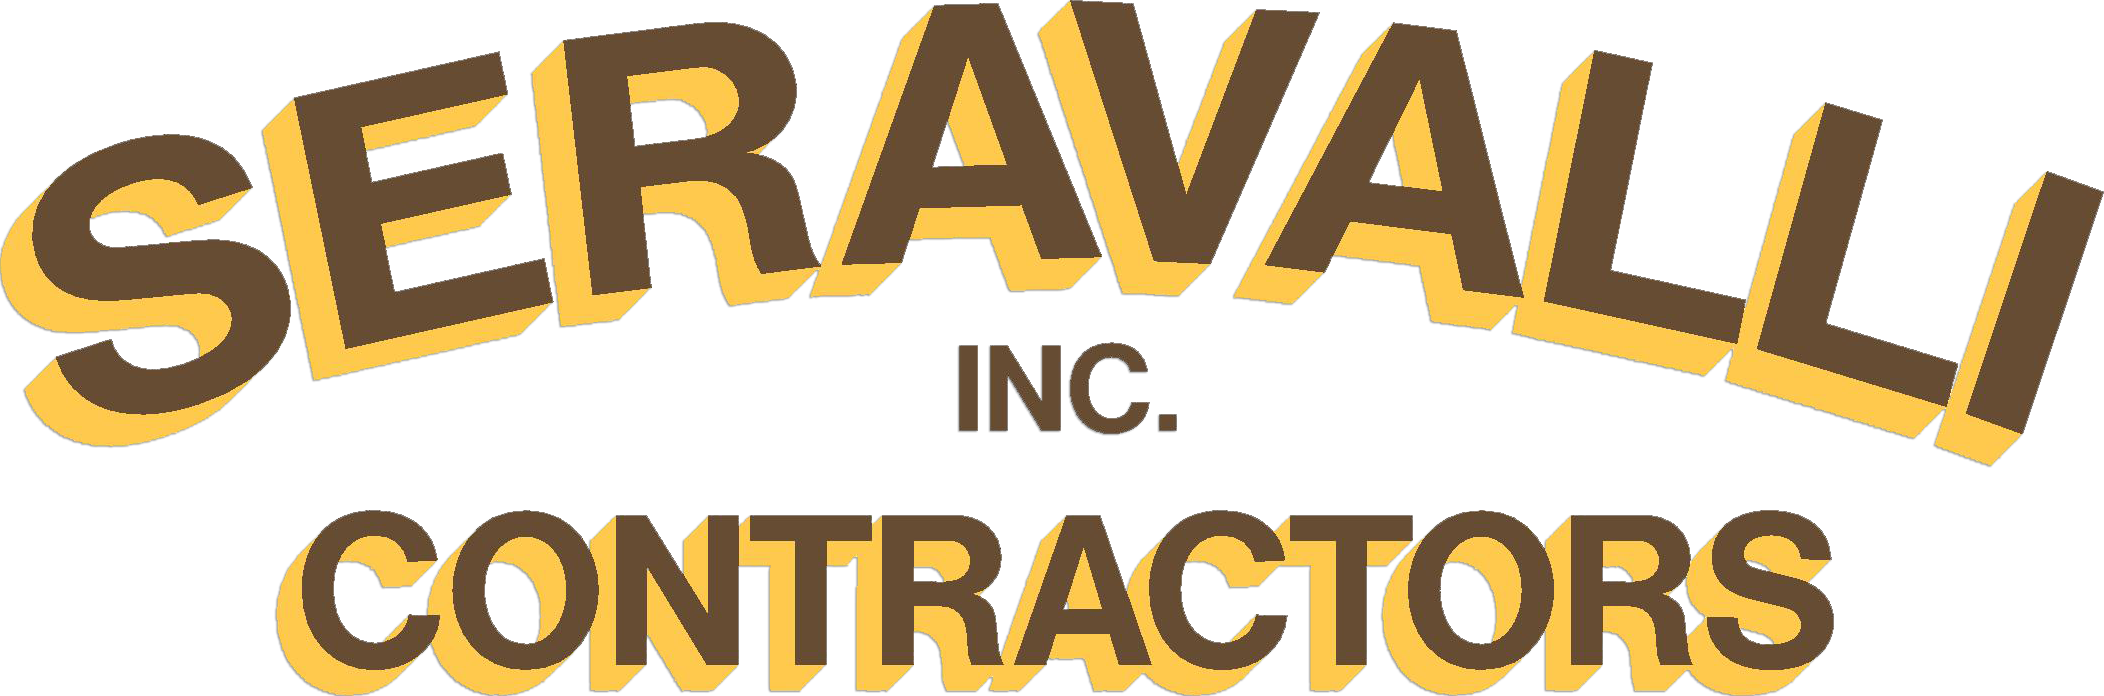 Seravalli Inc. General Contractors, Philadelphia PA